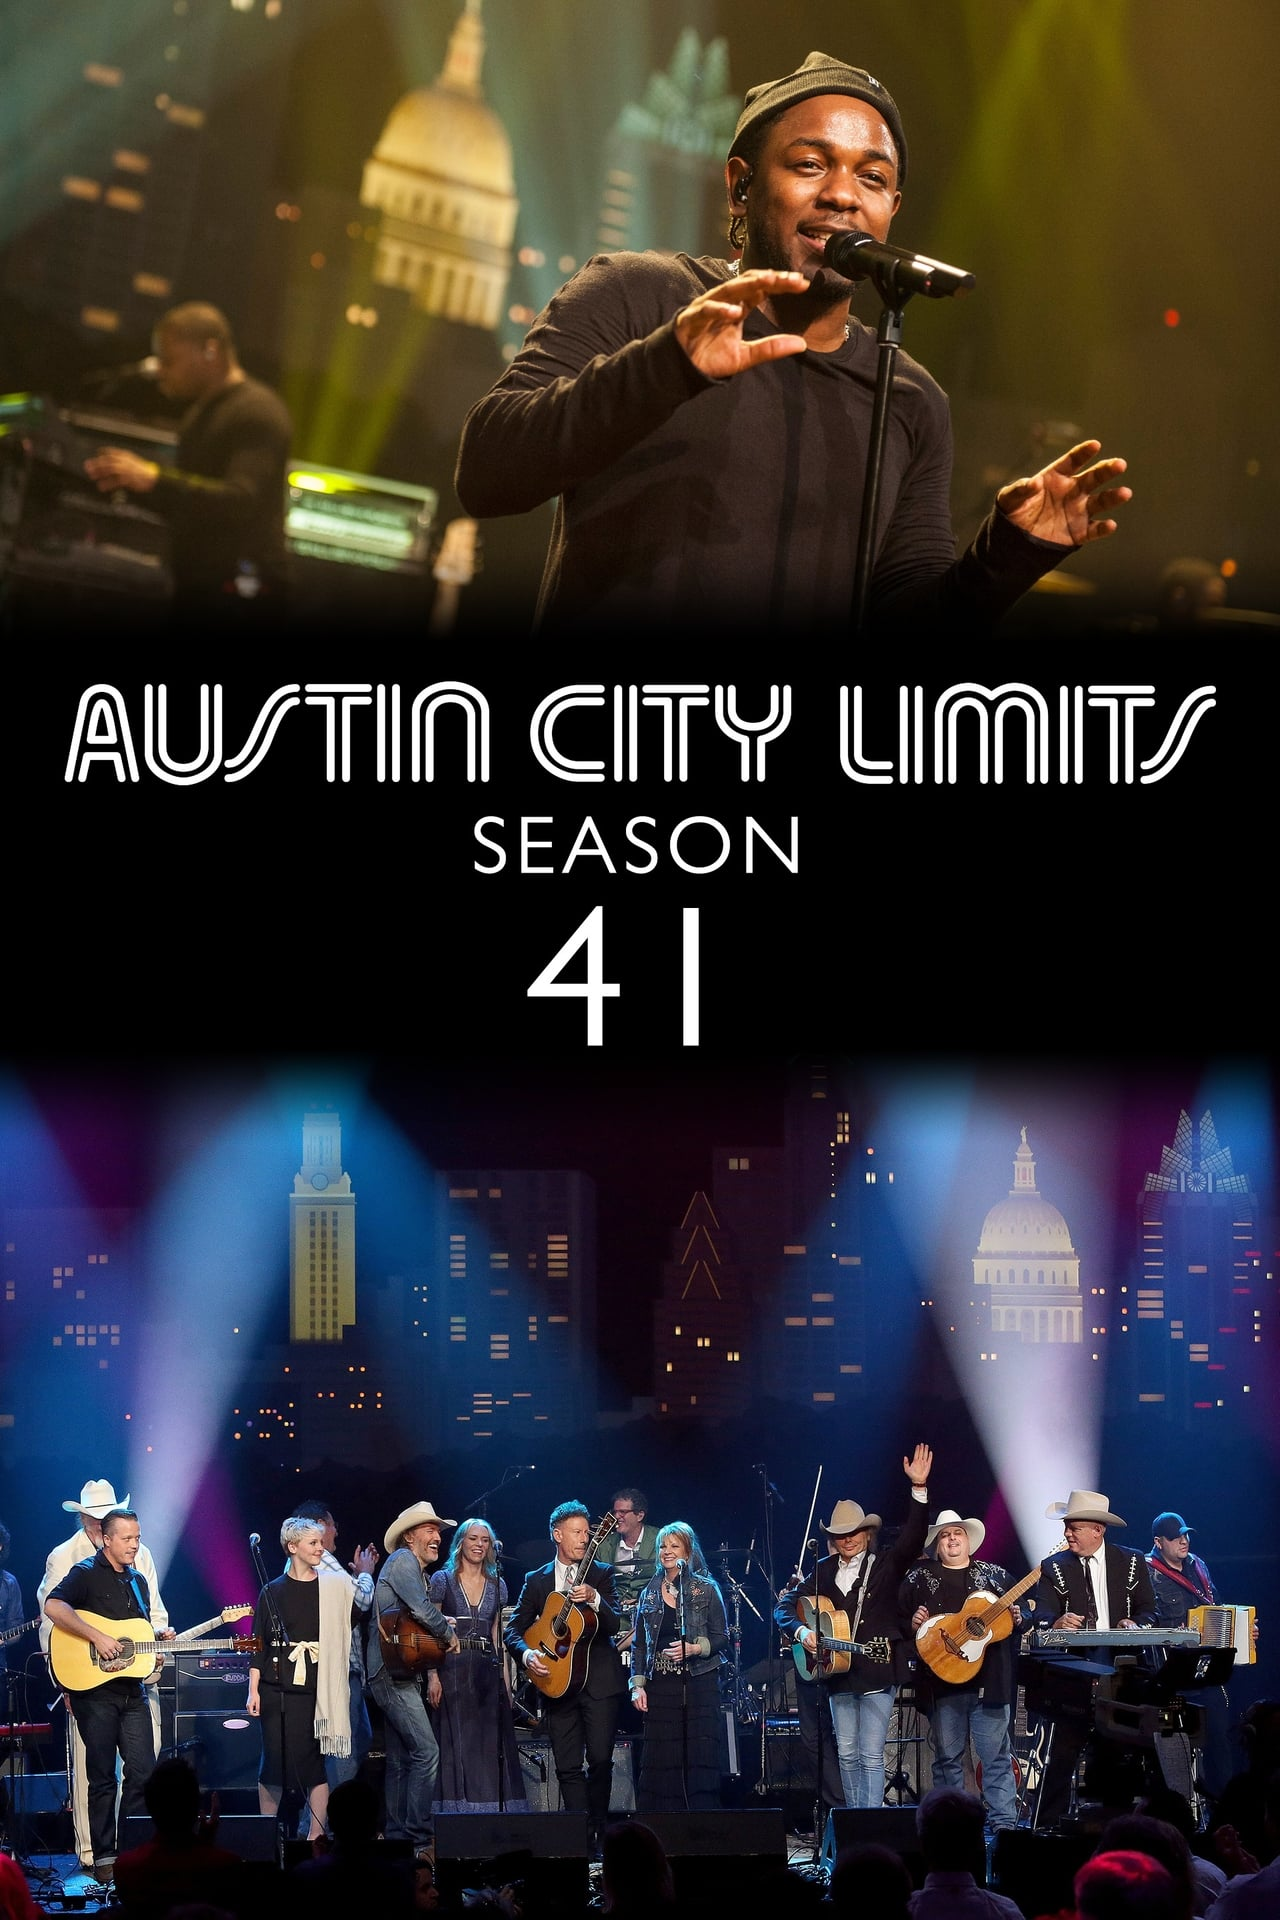 Watch Austin City Limits Season 41 Online